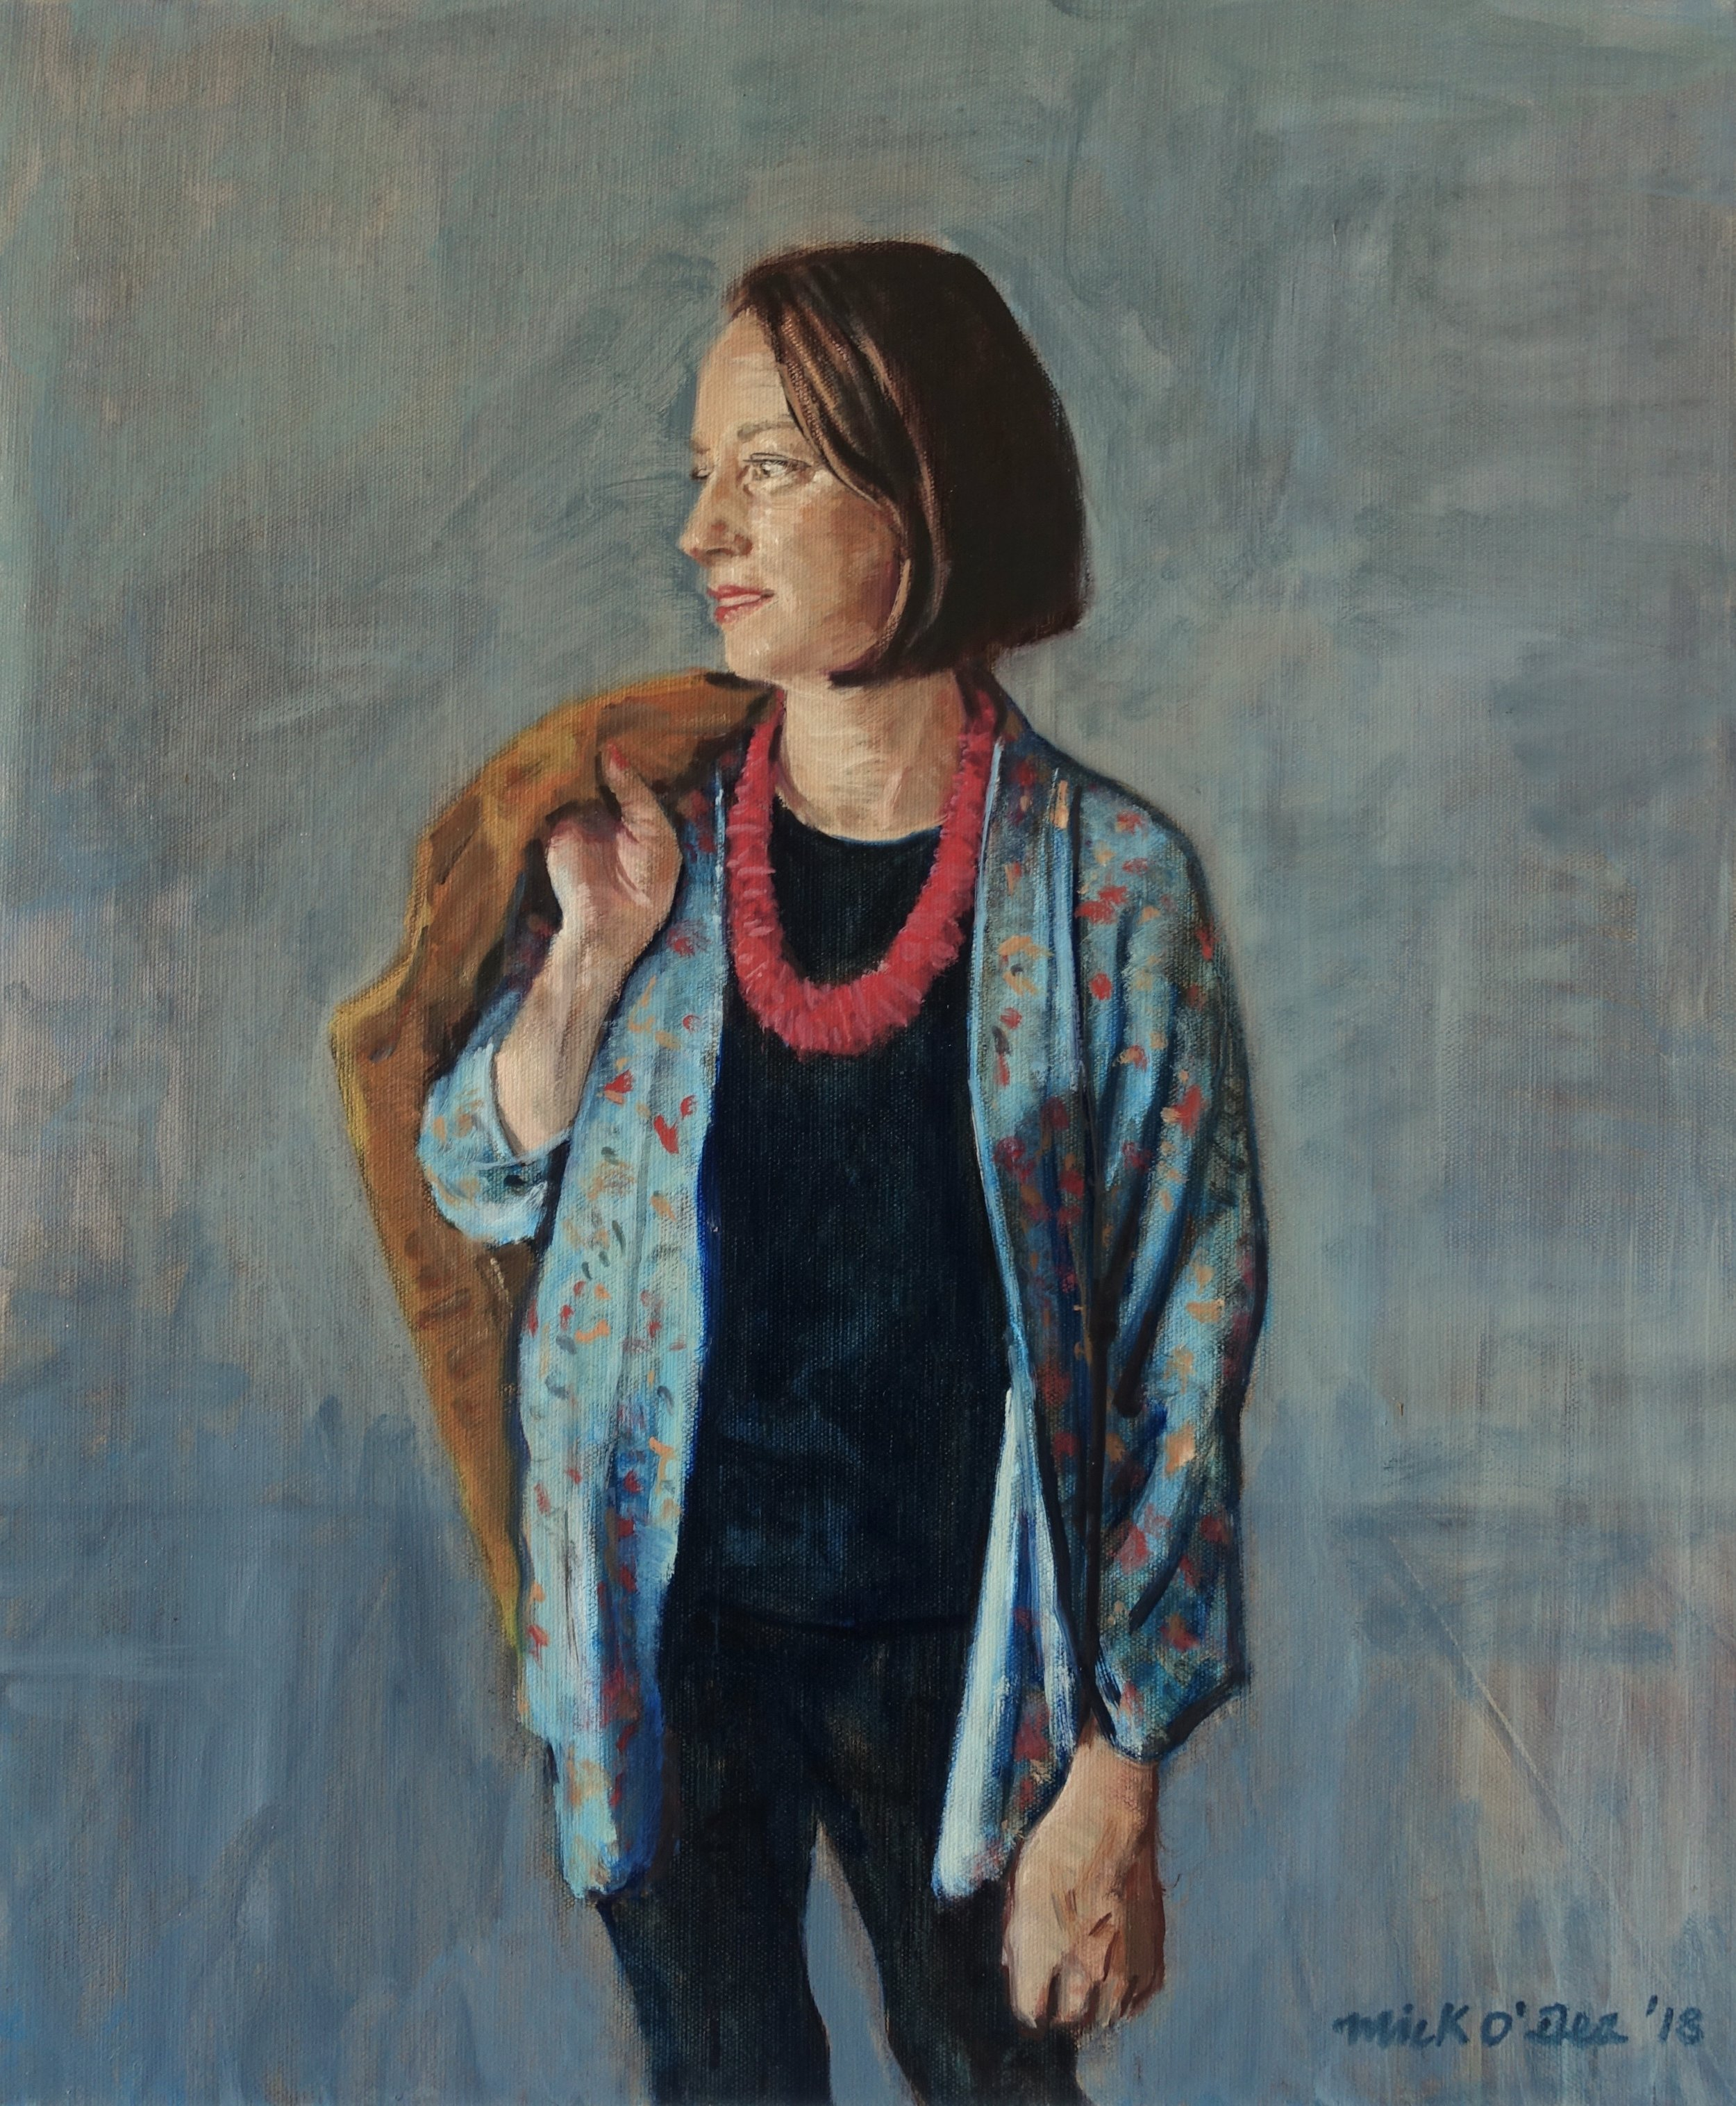 Michelle Kavanagh, Oil on Canvas